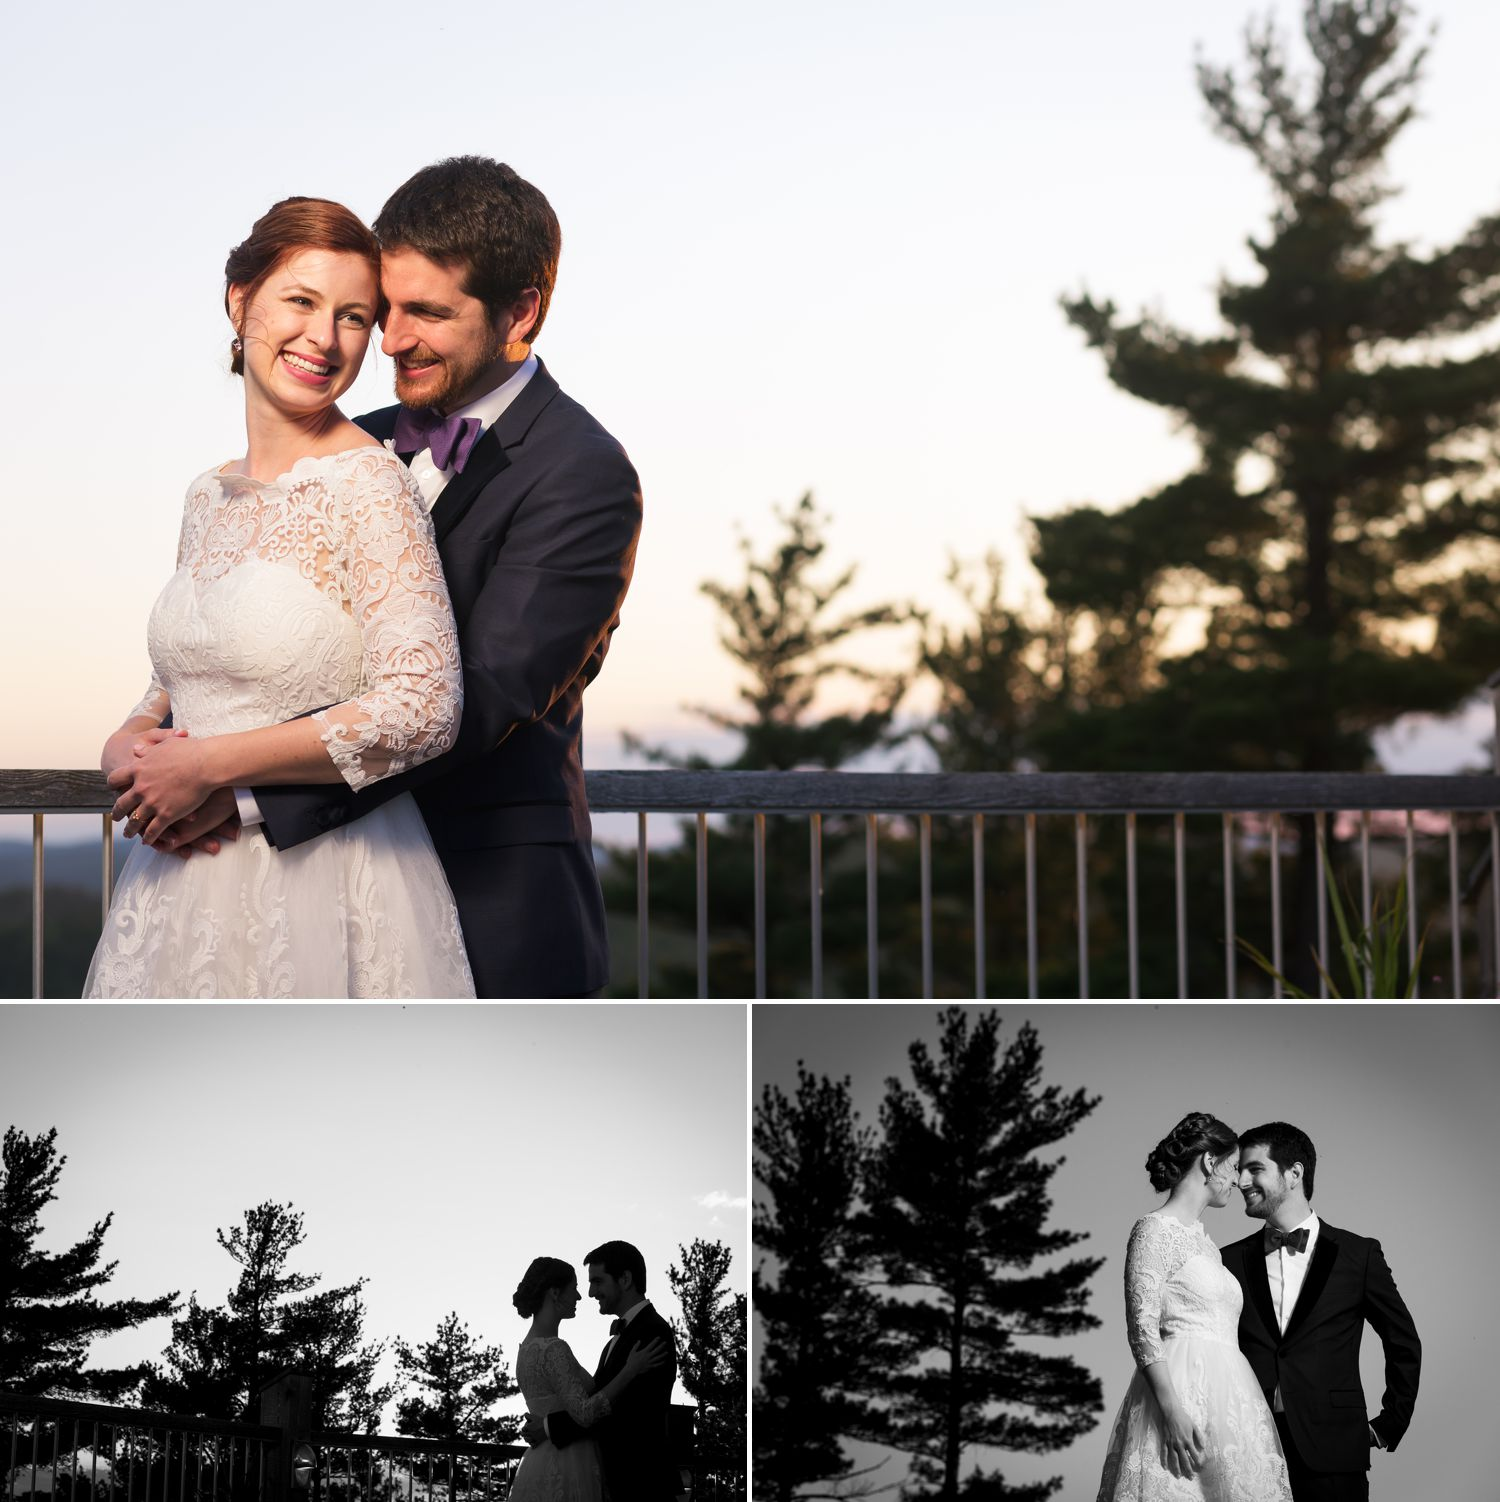 Evening portraits of the bride and groom after their wedding ceremony at Le Belvedere in Wakefield, Quebec